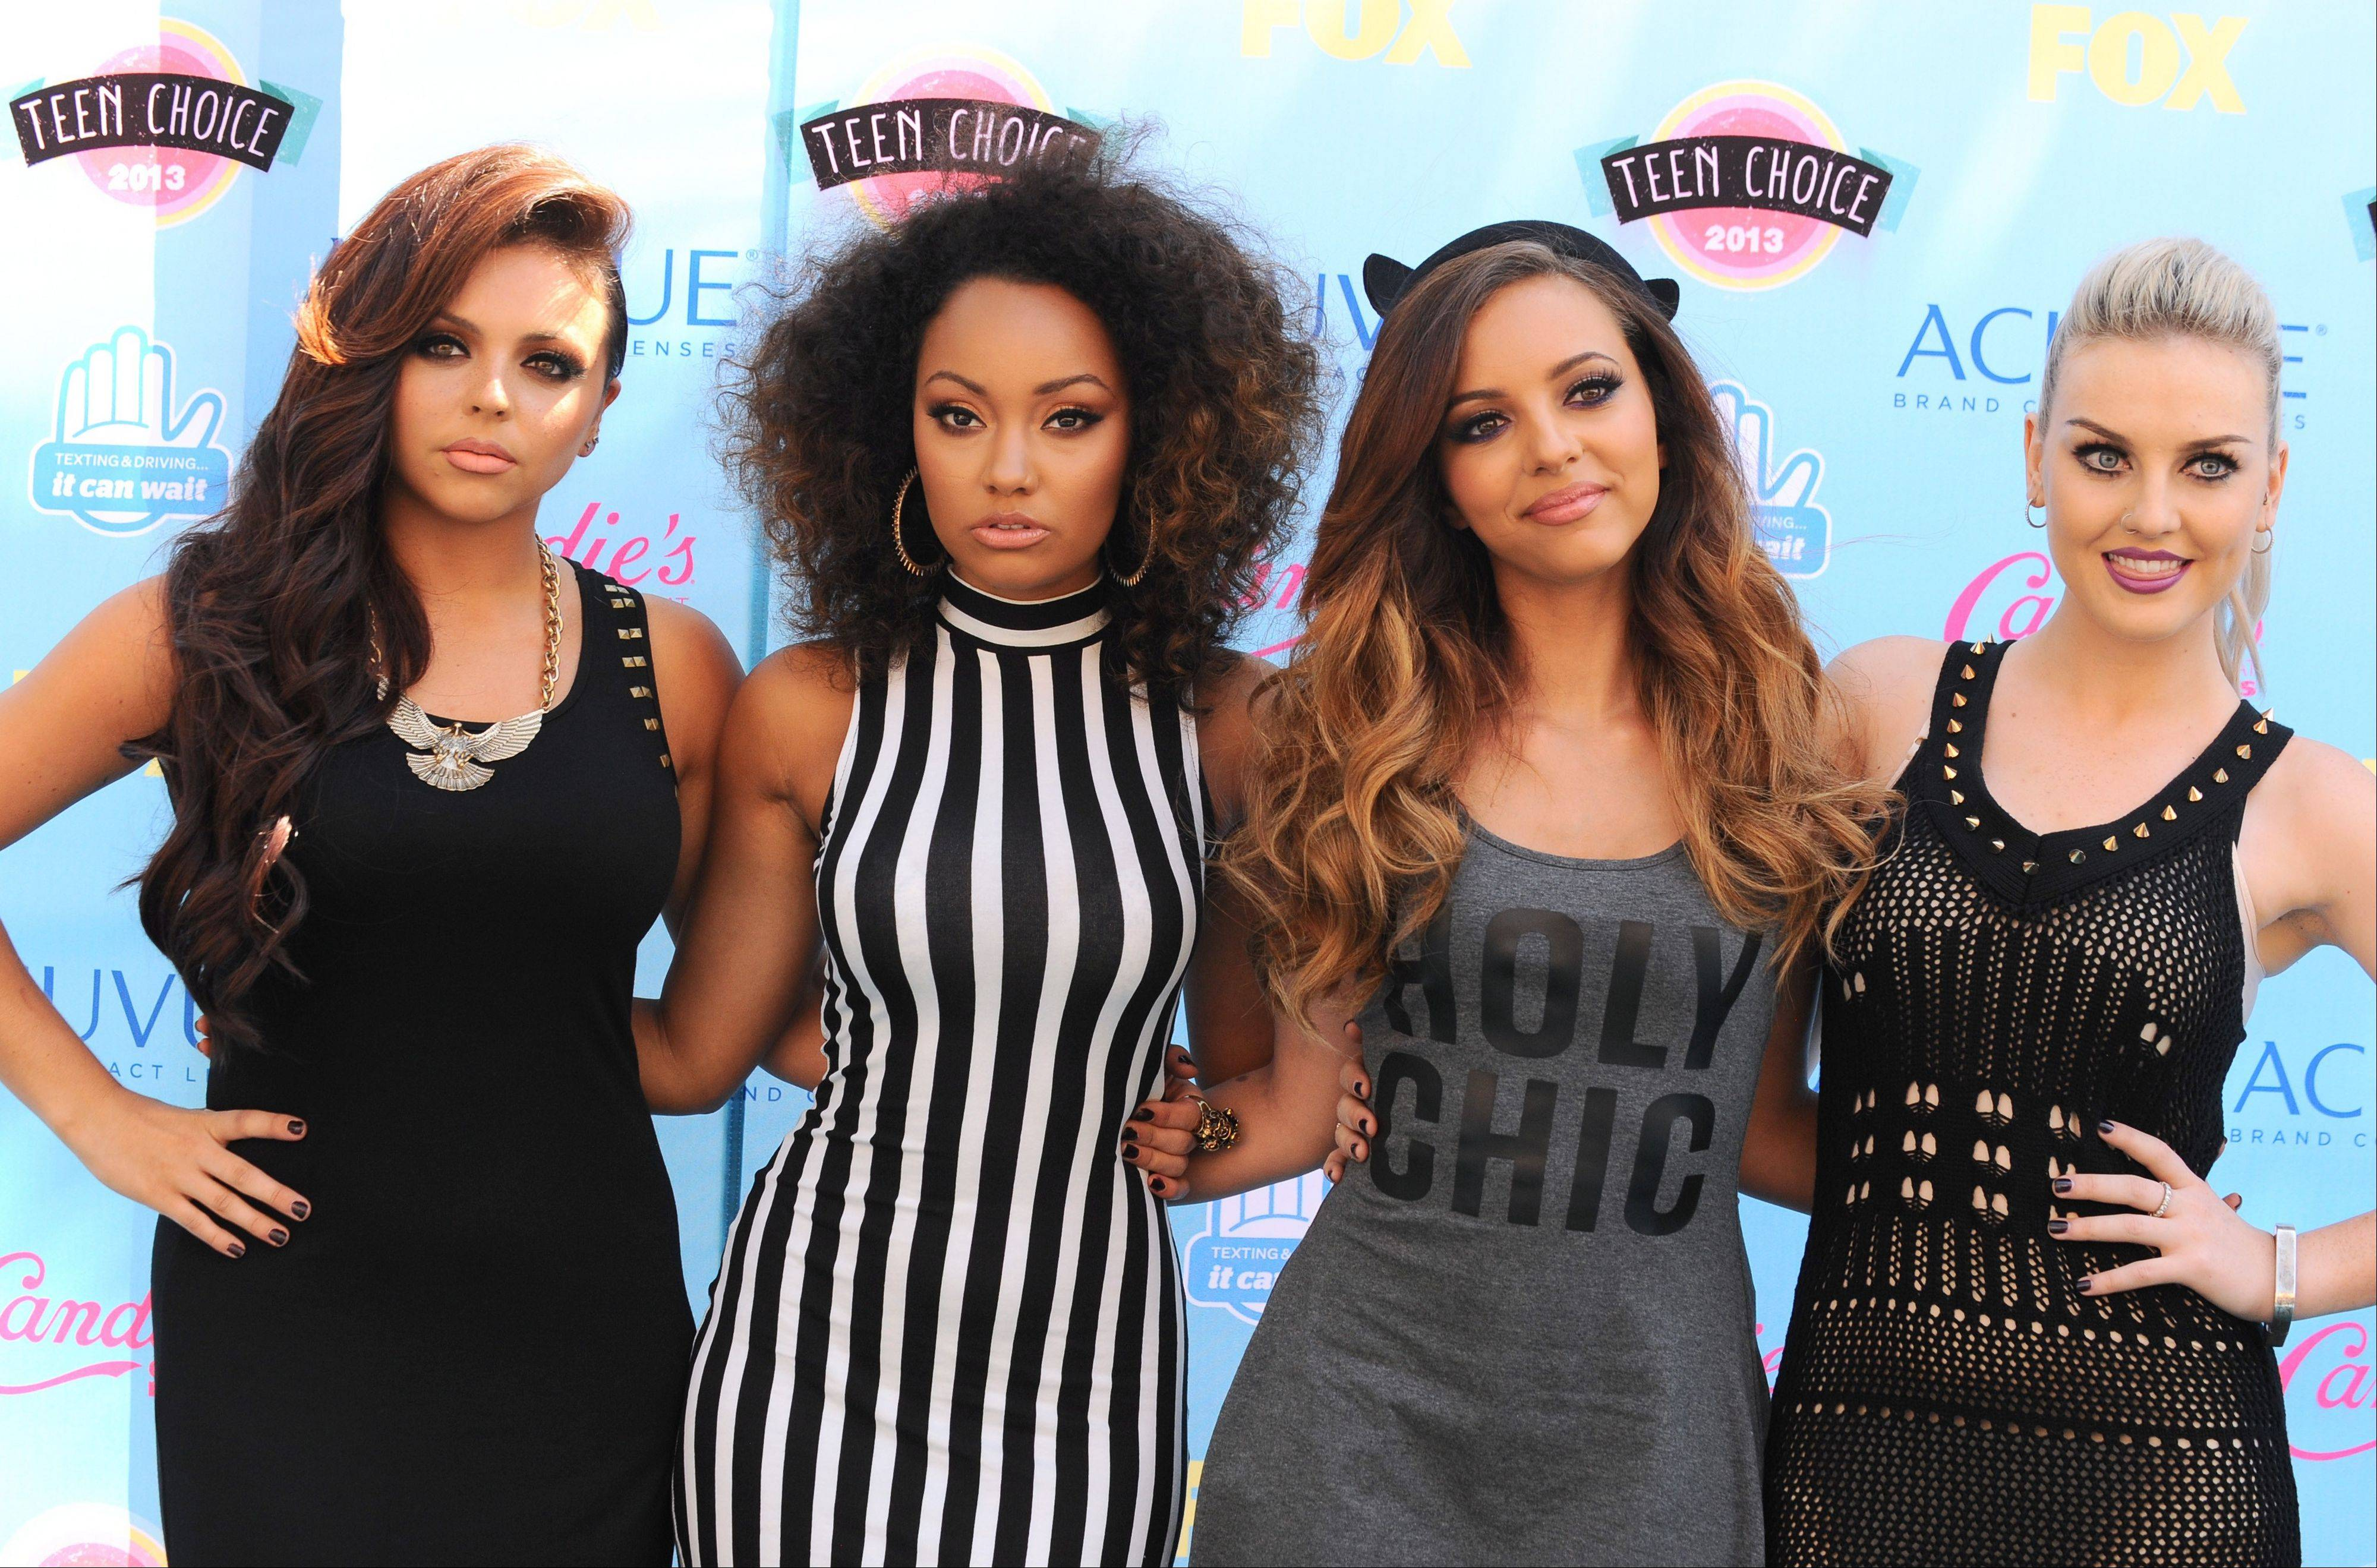 Jesy Nelson, from left, Leigh-Anne Pinnock, Jade Thirwall and Perrie Edwards of the musical group Little Mix arrive at the Teen Choice Awards at the Gibson Amphitheater on Sunday.